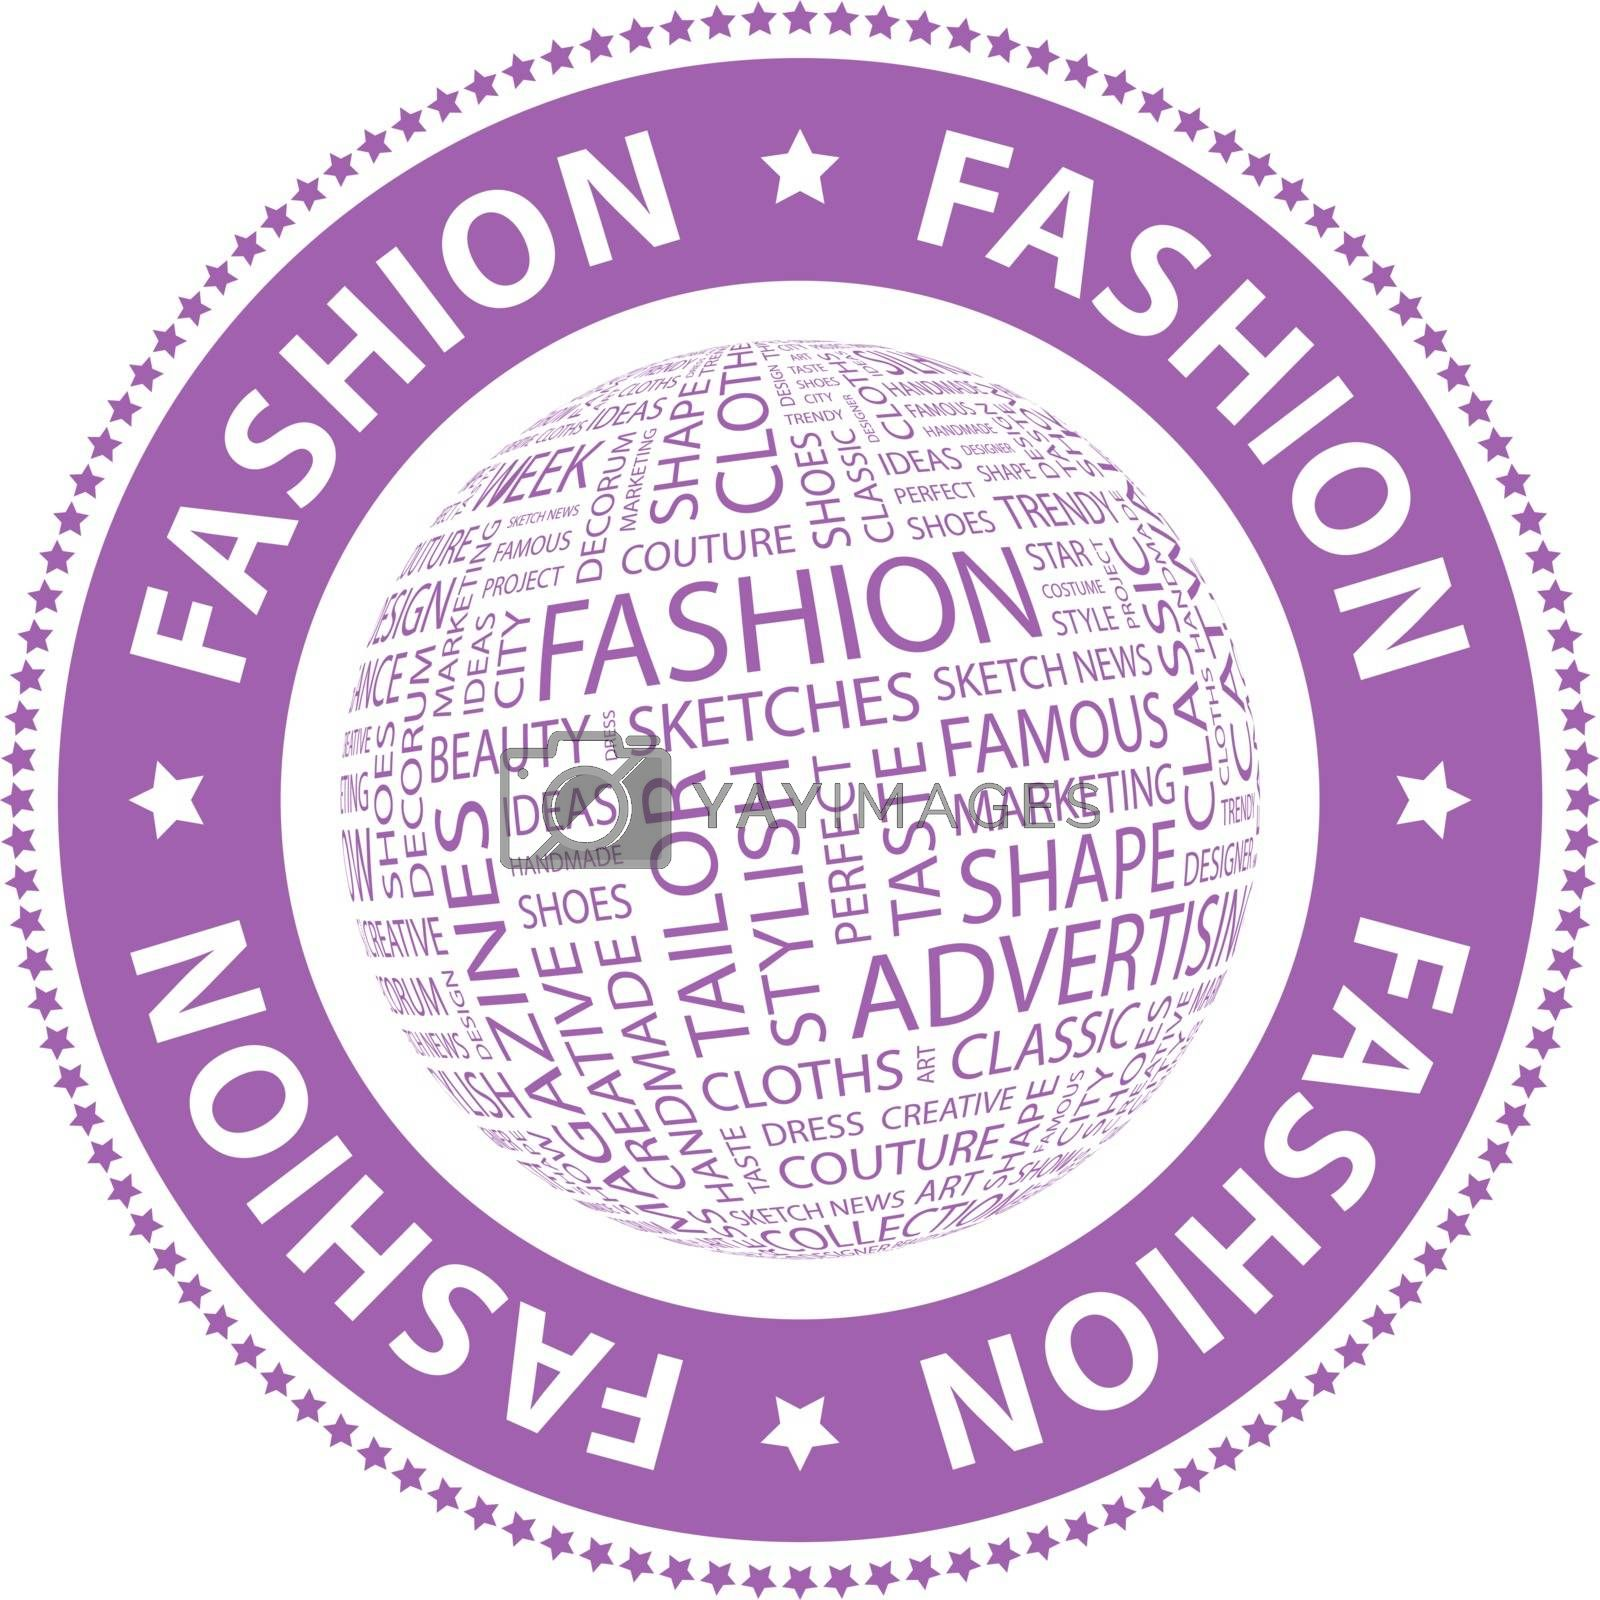 FASHION. Word cloud illustration. Tag cloud concept collage.